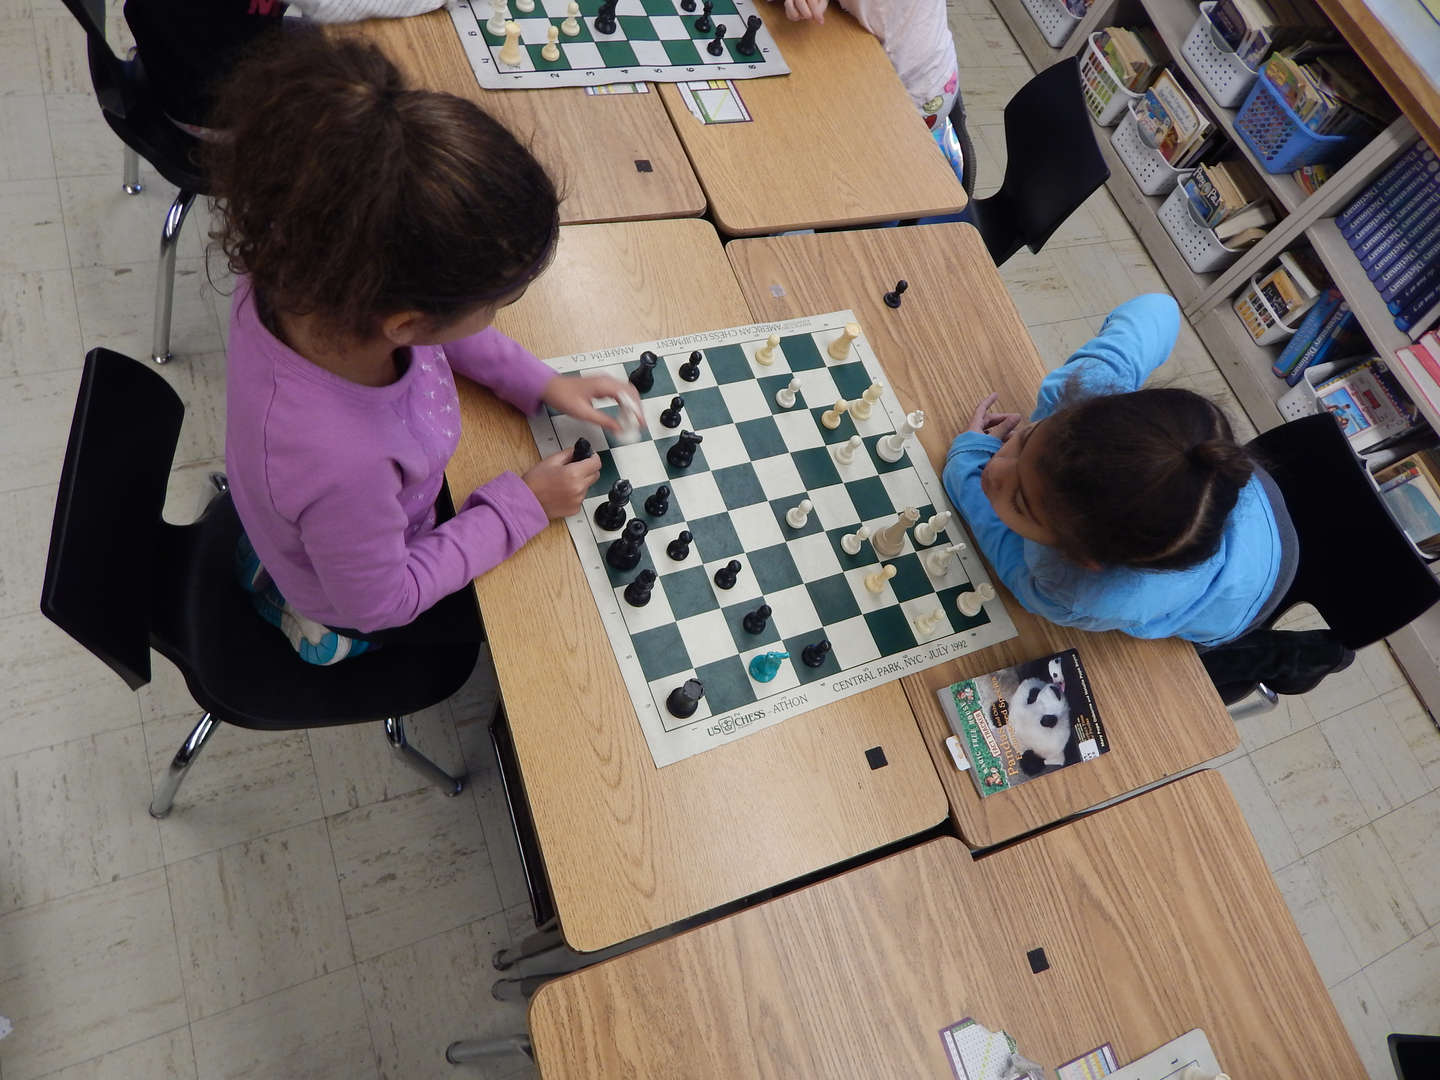 2 children playing chess